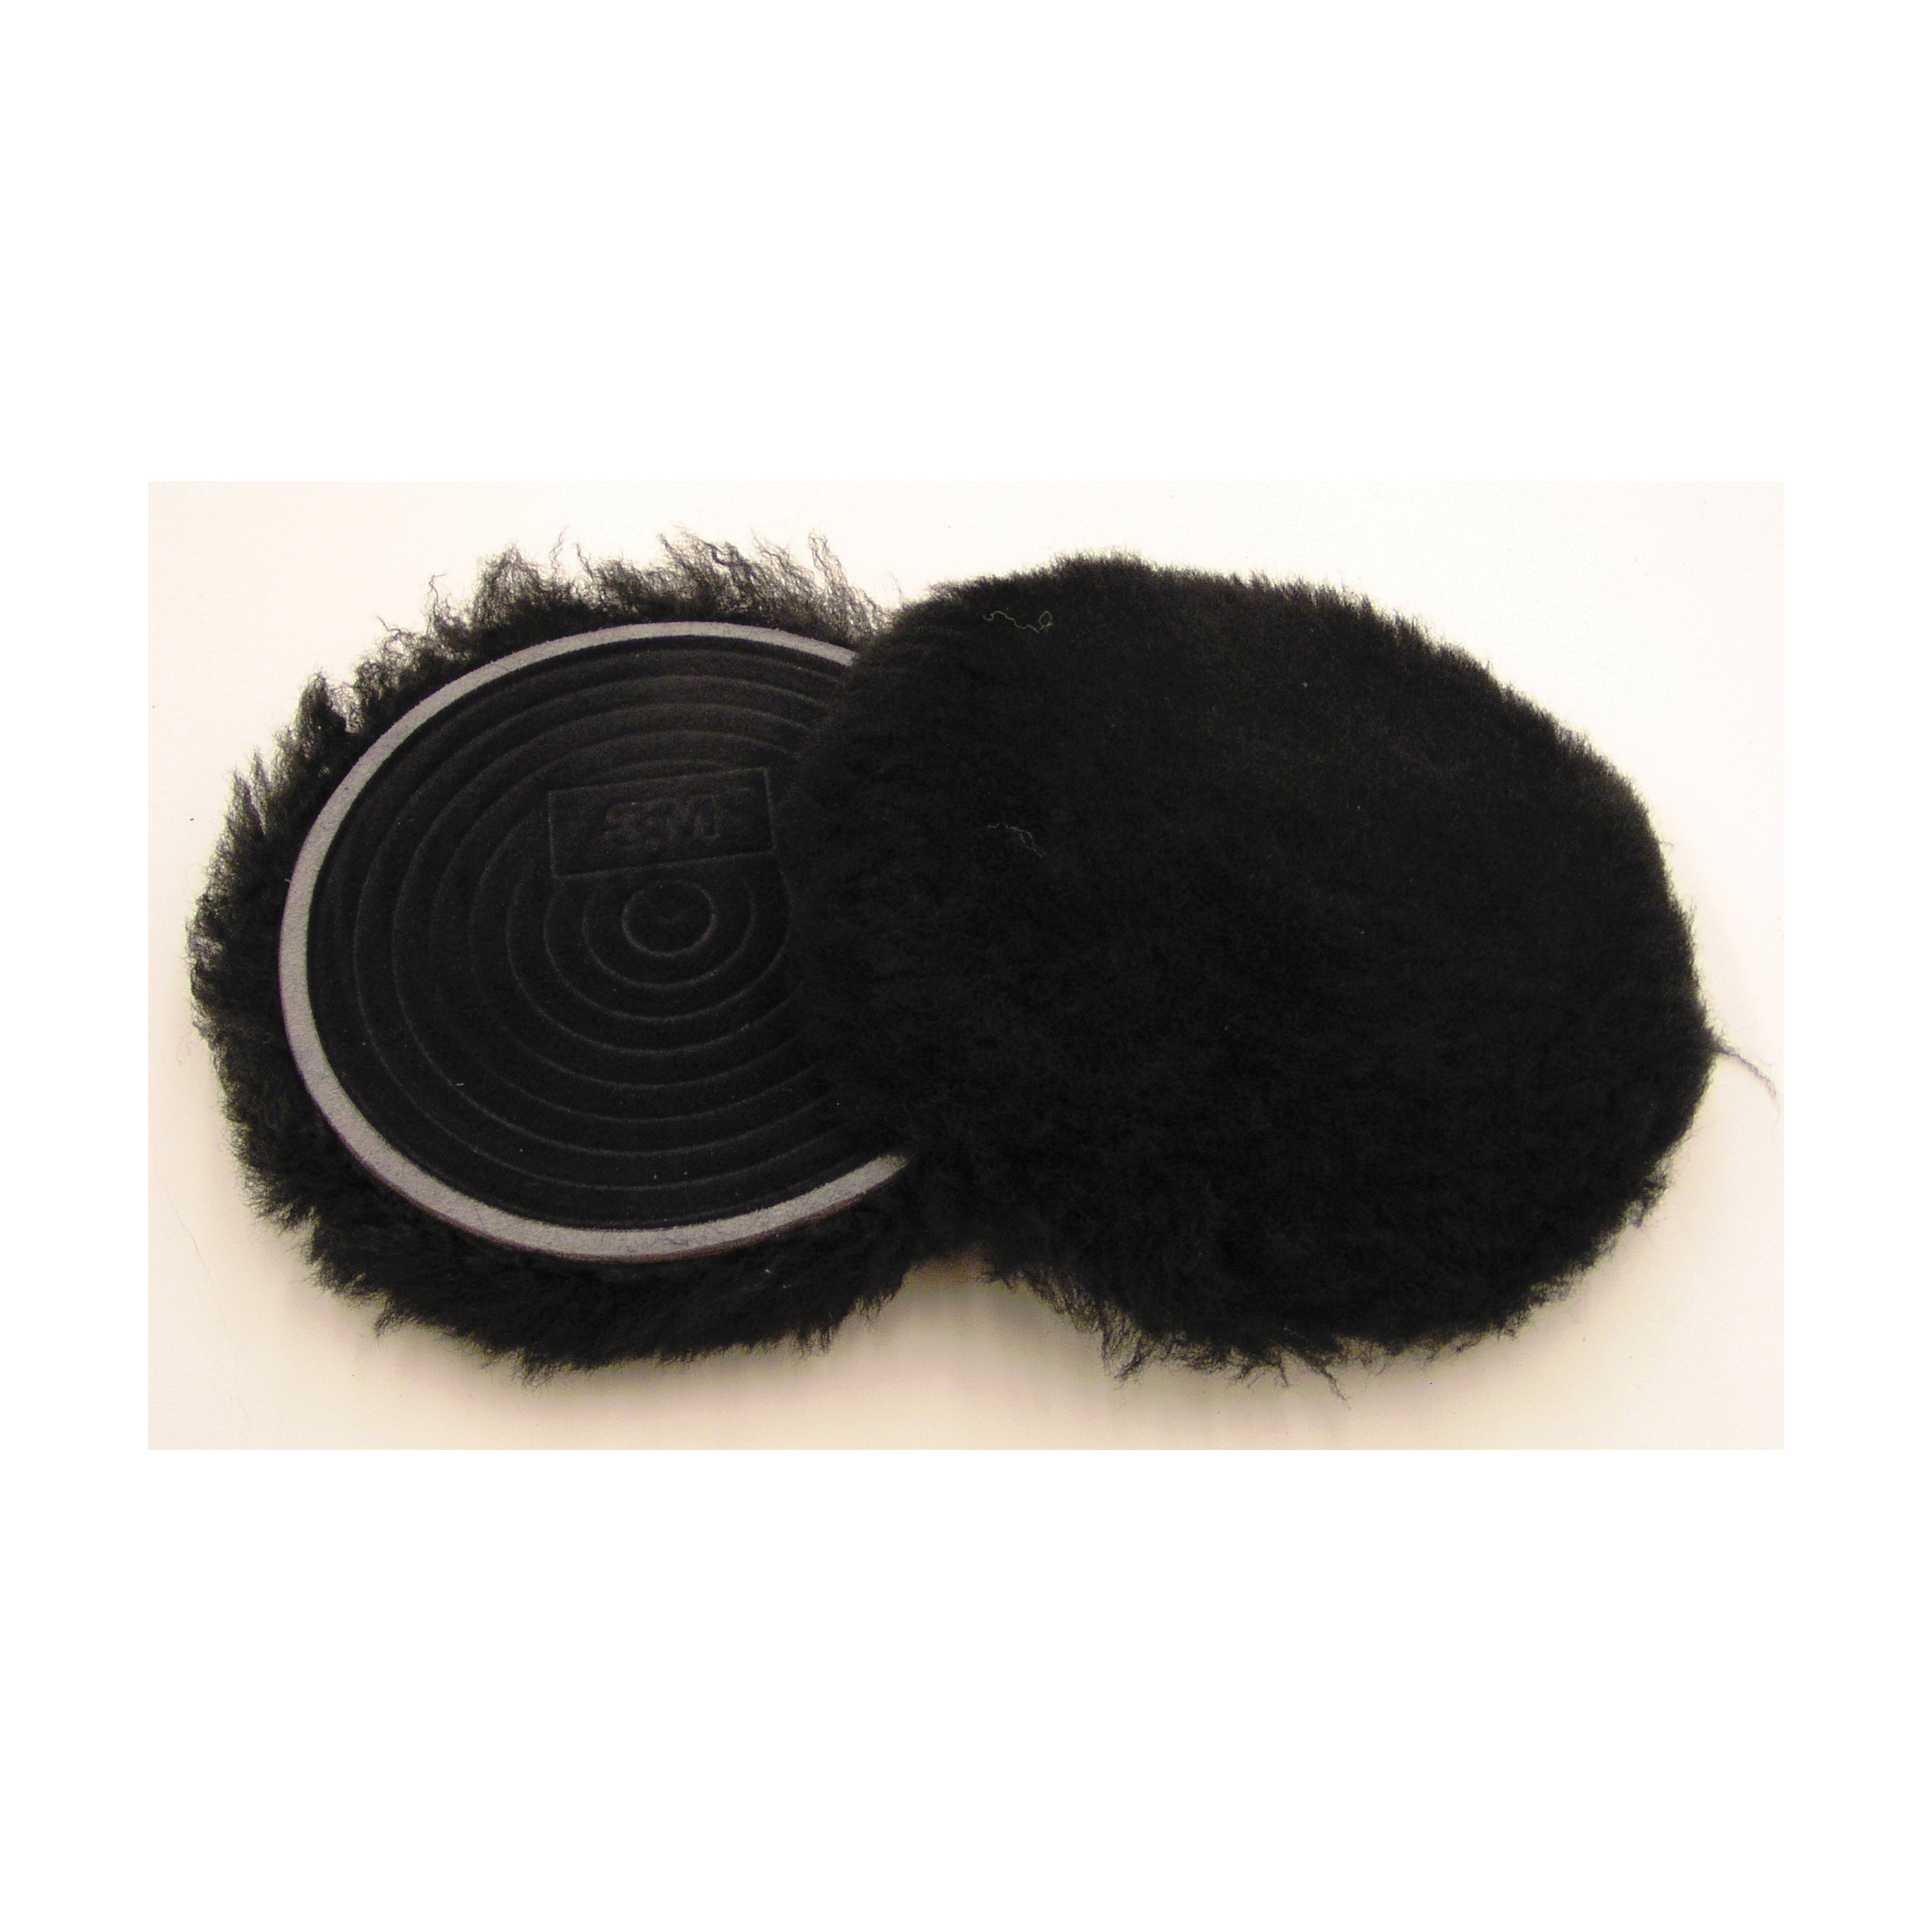 Finesse-it™ 051144-85100 Natural Regular Buffing Pad, 5-1/4 in Dia, Hook and Loop Attachment, Wool Pad